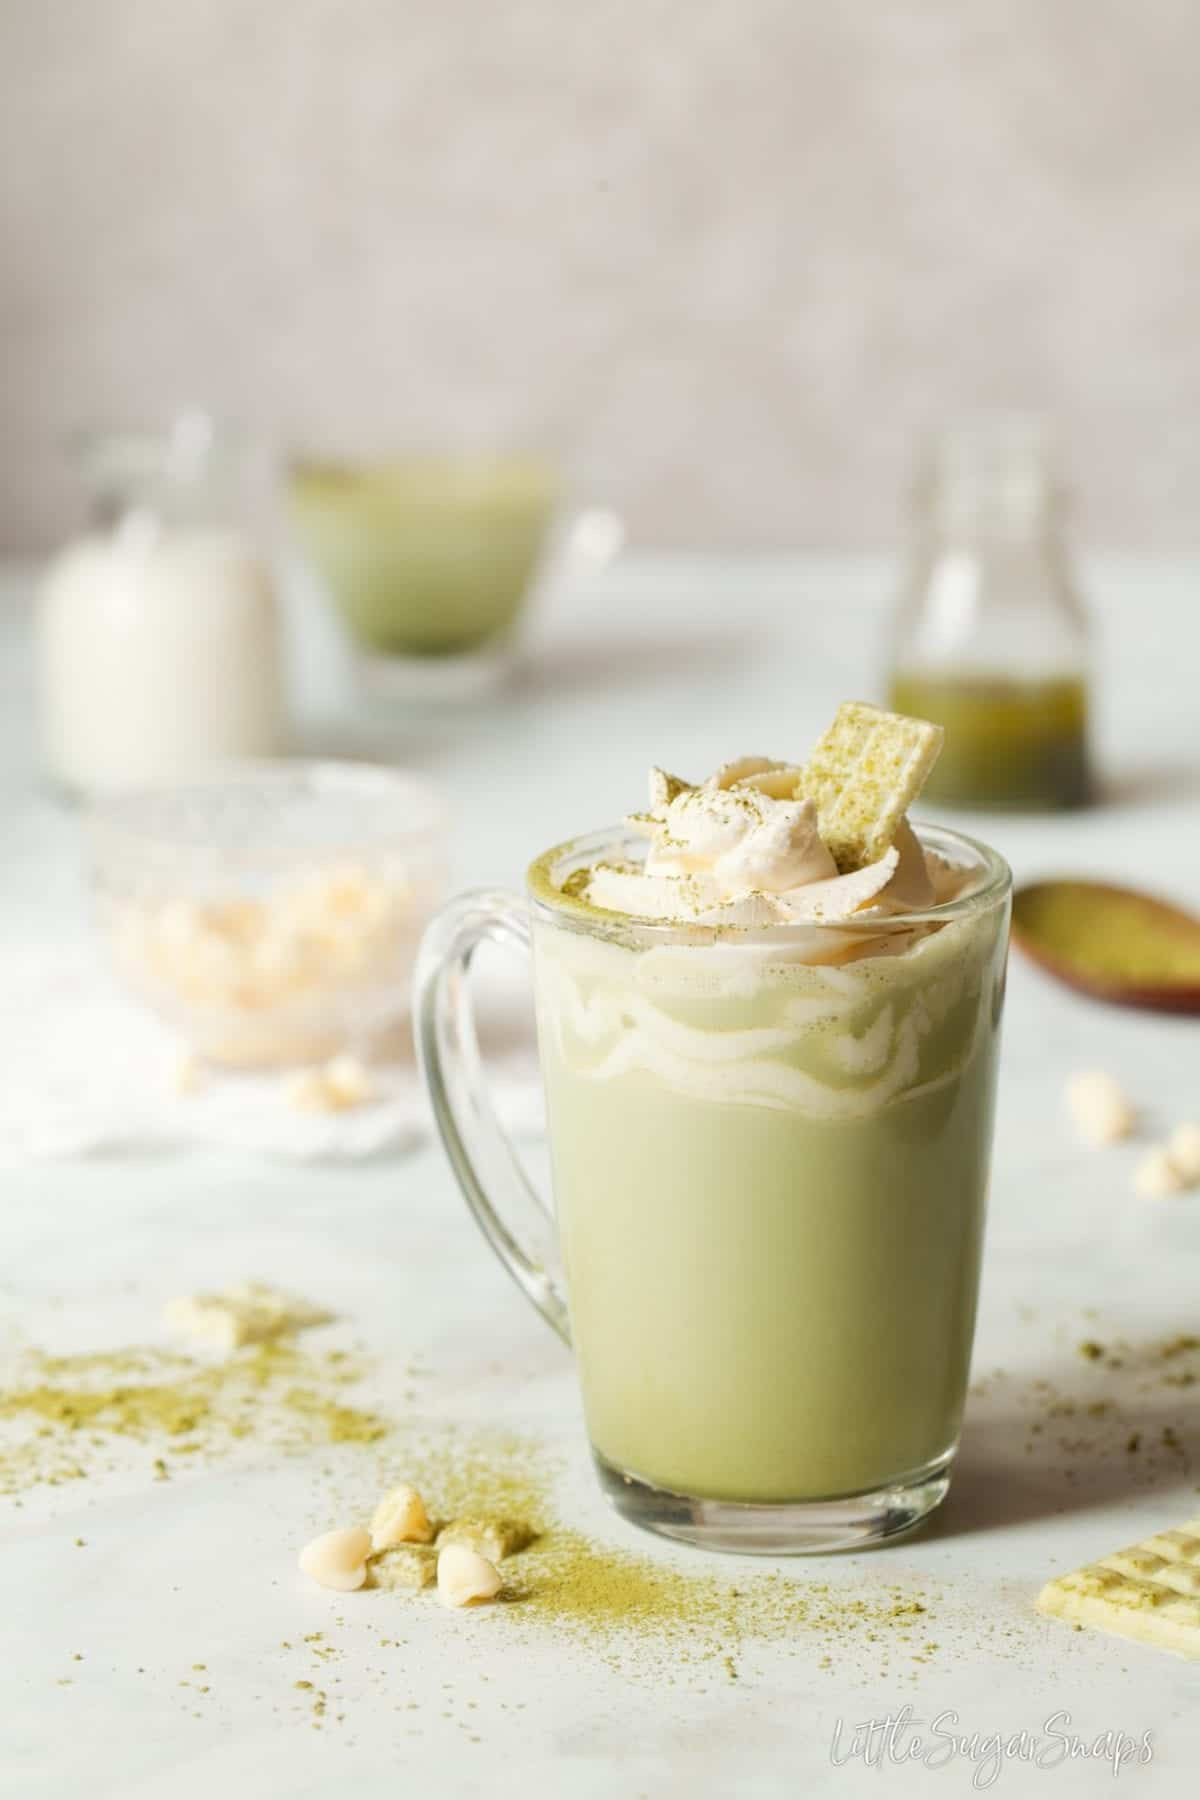 Chocolate matcha in a heatproof glass with whipped cream